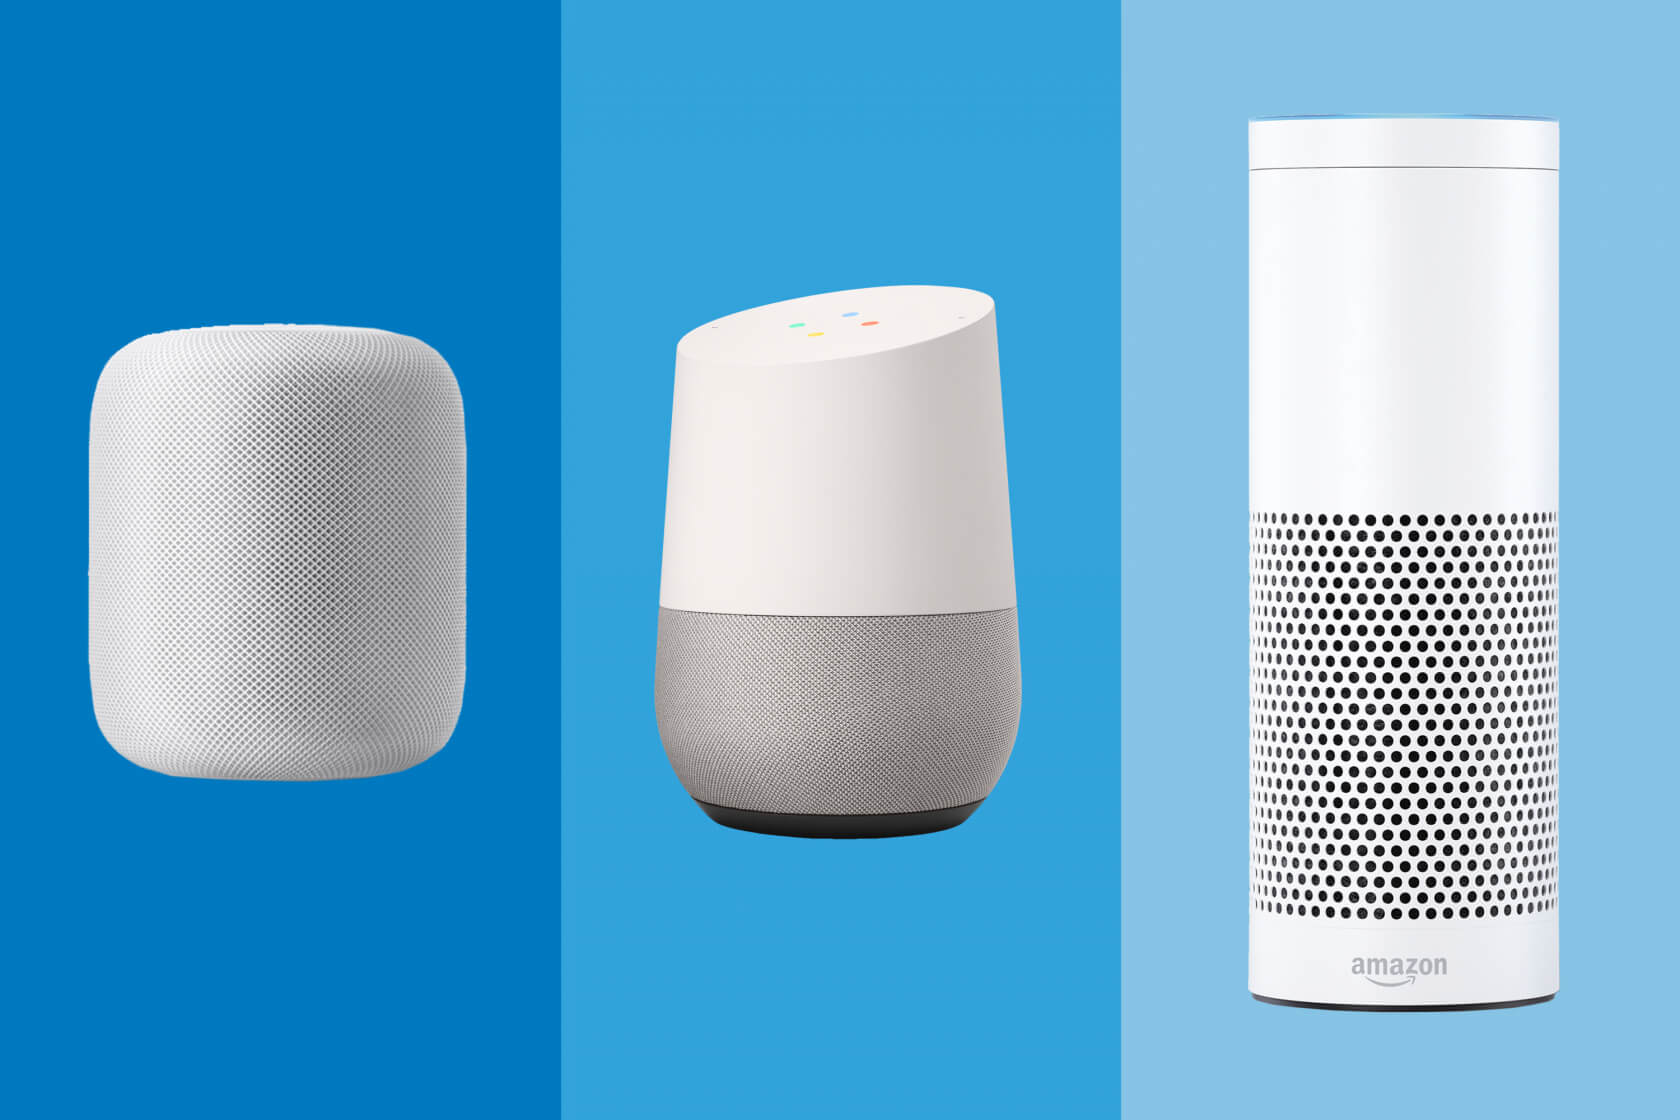 Opinion: The evolution of smart speakers